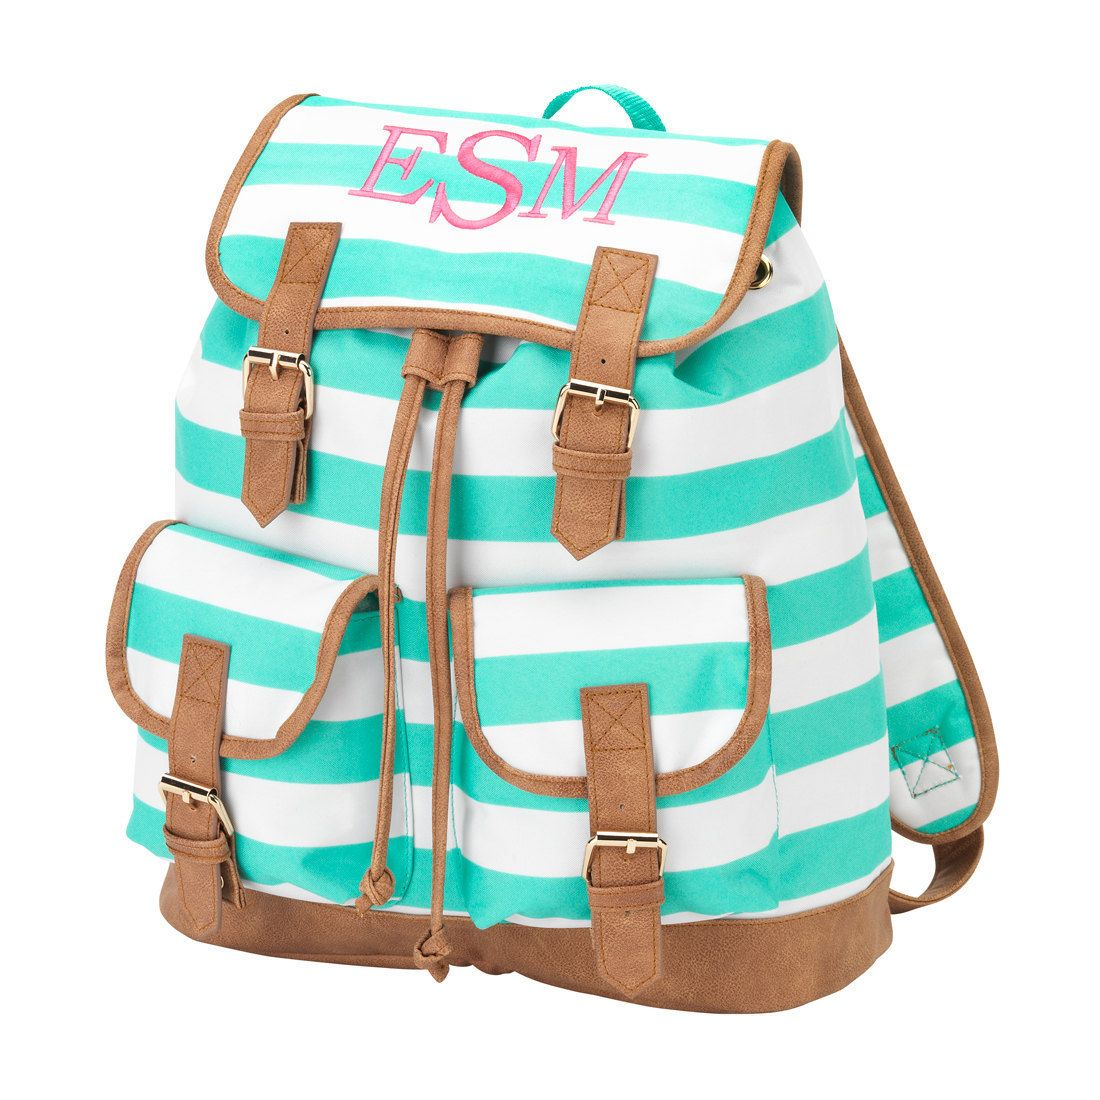 Monogrammed College book bag by SoBlessedMonogrammed on Etsy